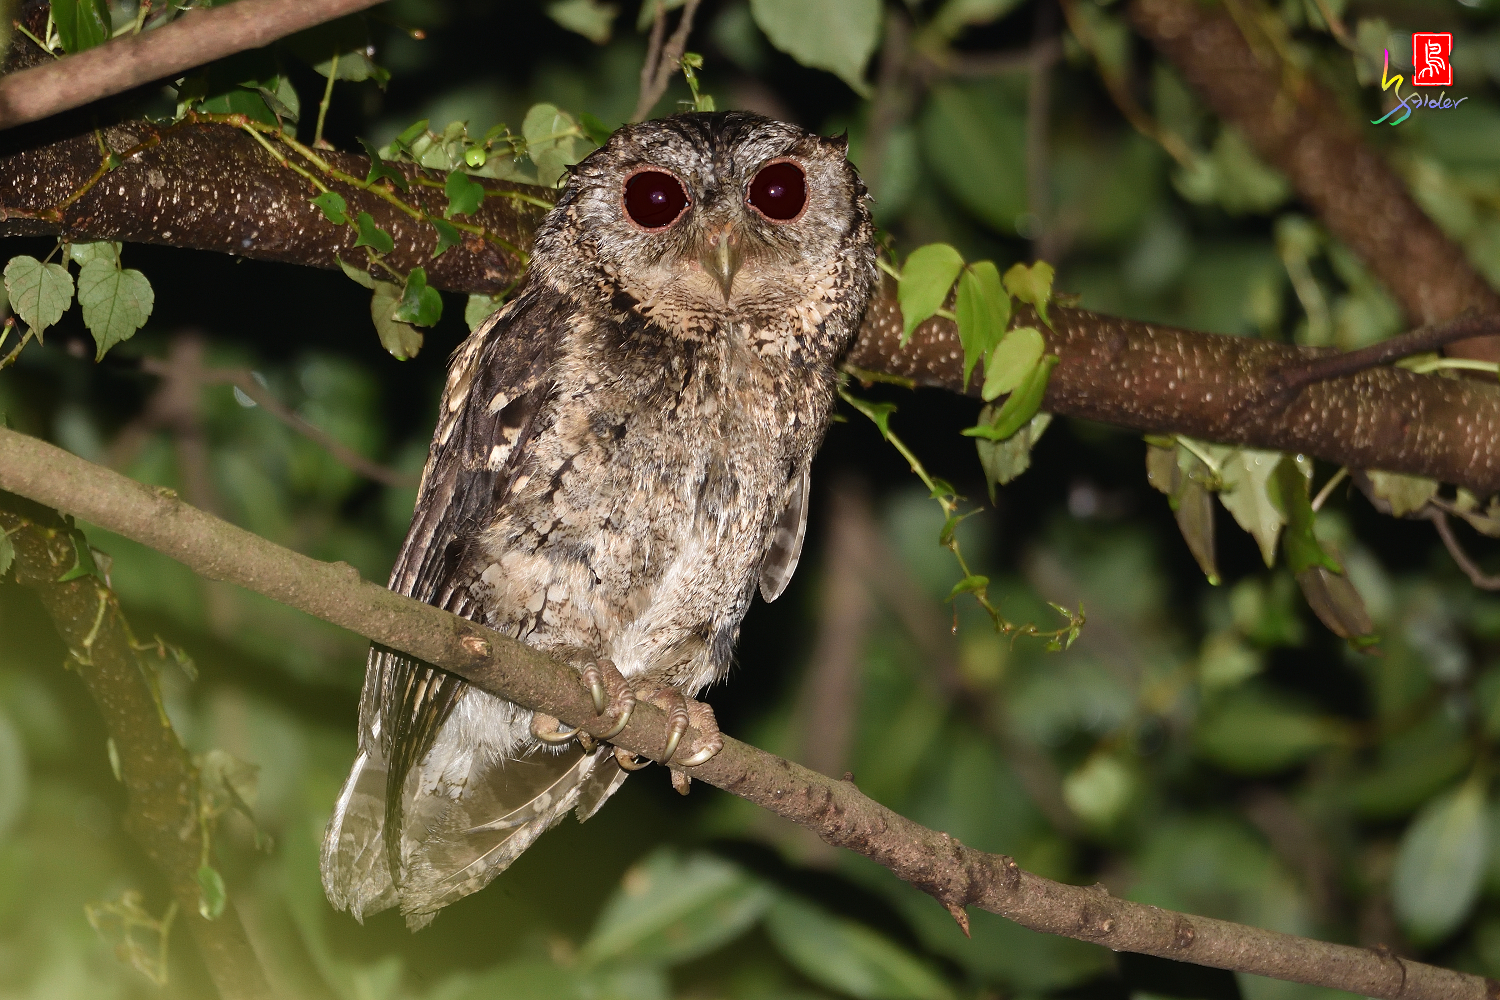 Collard_Scops_Owl_1478_Redeye